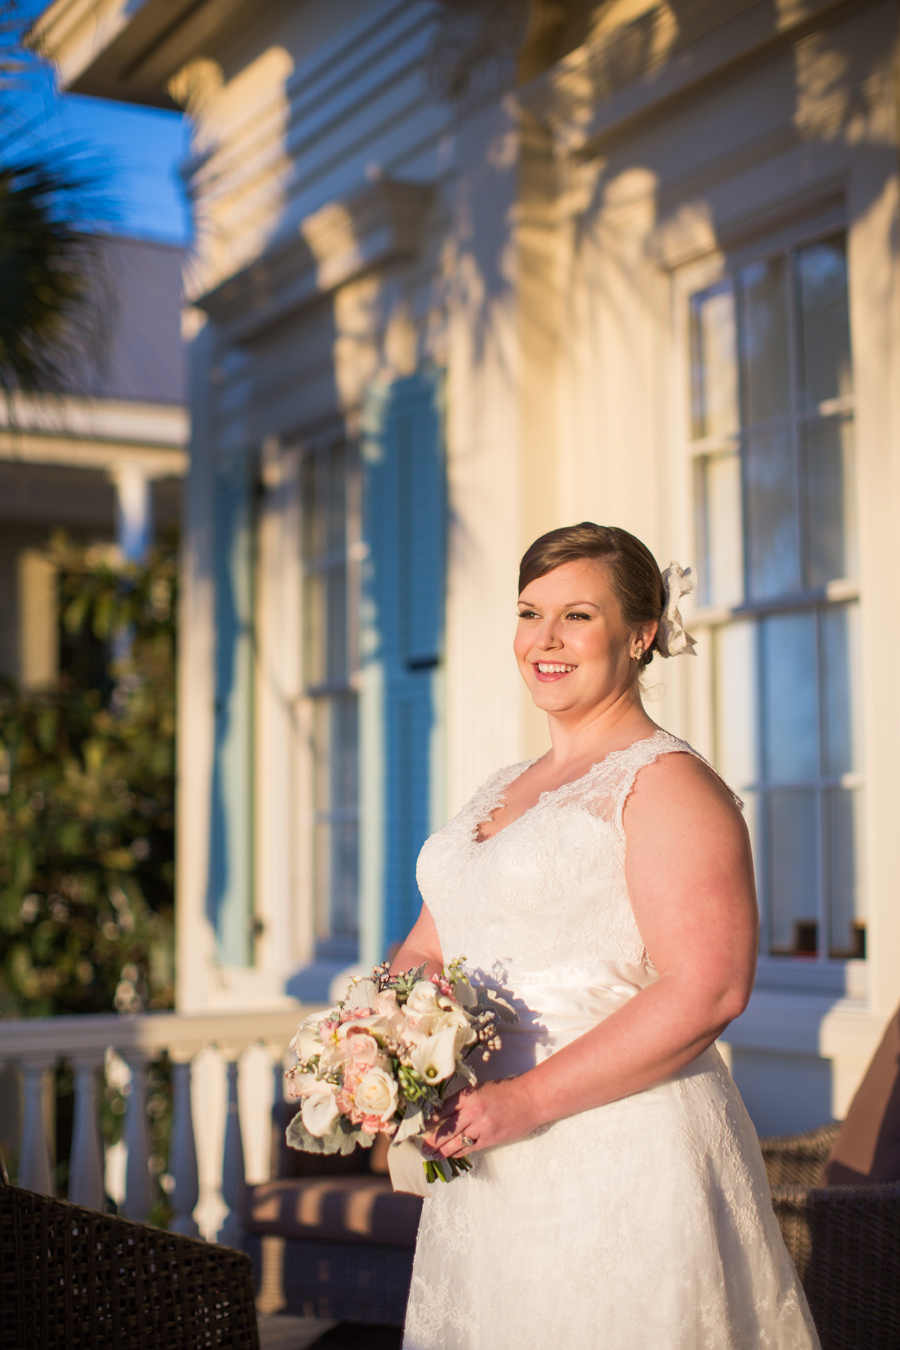 Charleston-winter-bridal-portrait-Carolina-Photosmith-022